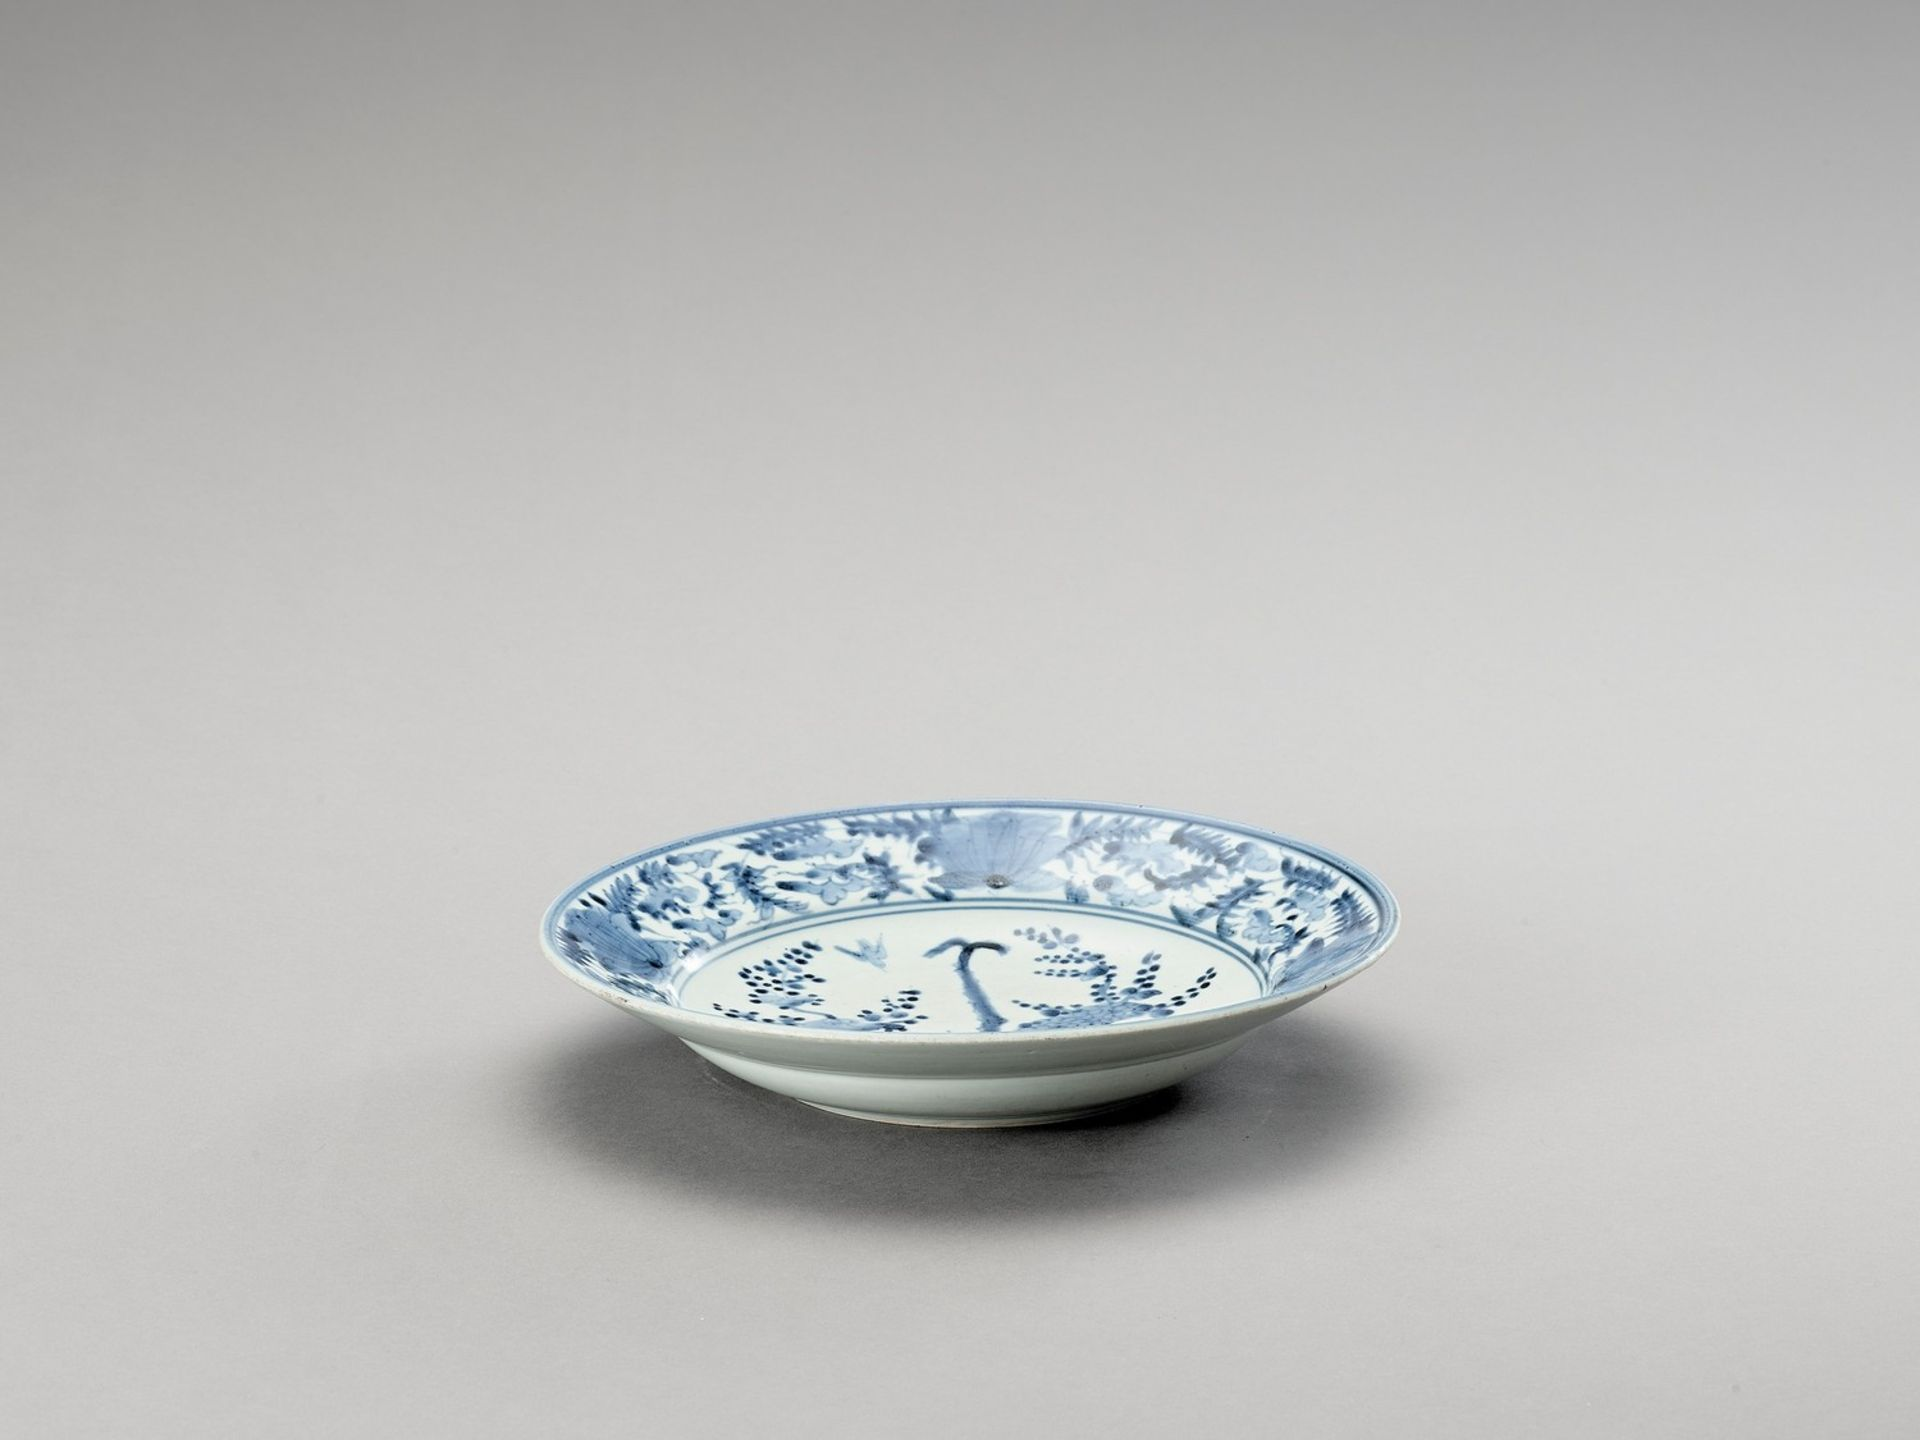 A 'KRAAK' STYLE BLUE AND WHITE PORCELAIN DISH - Image 2 of 4